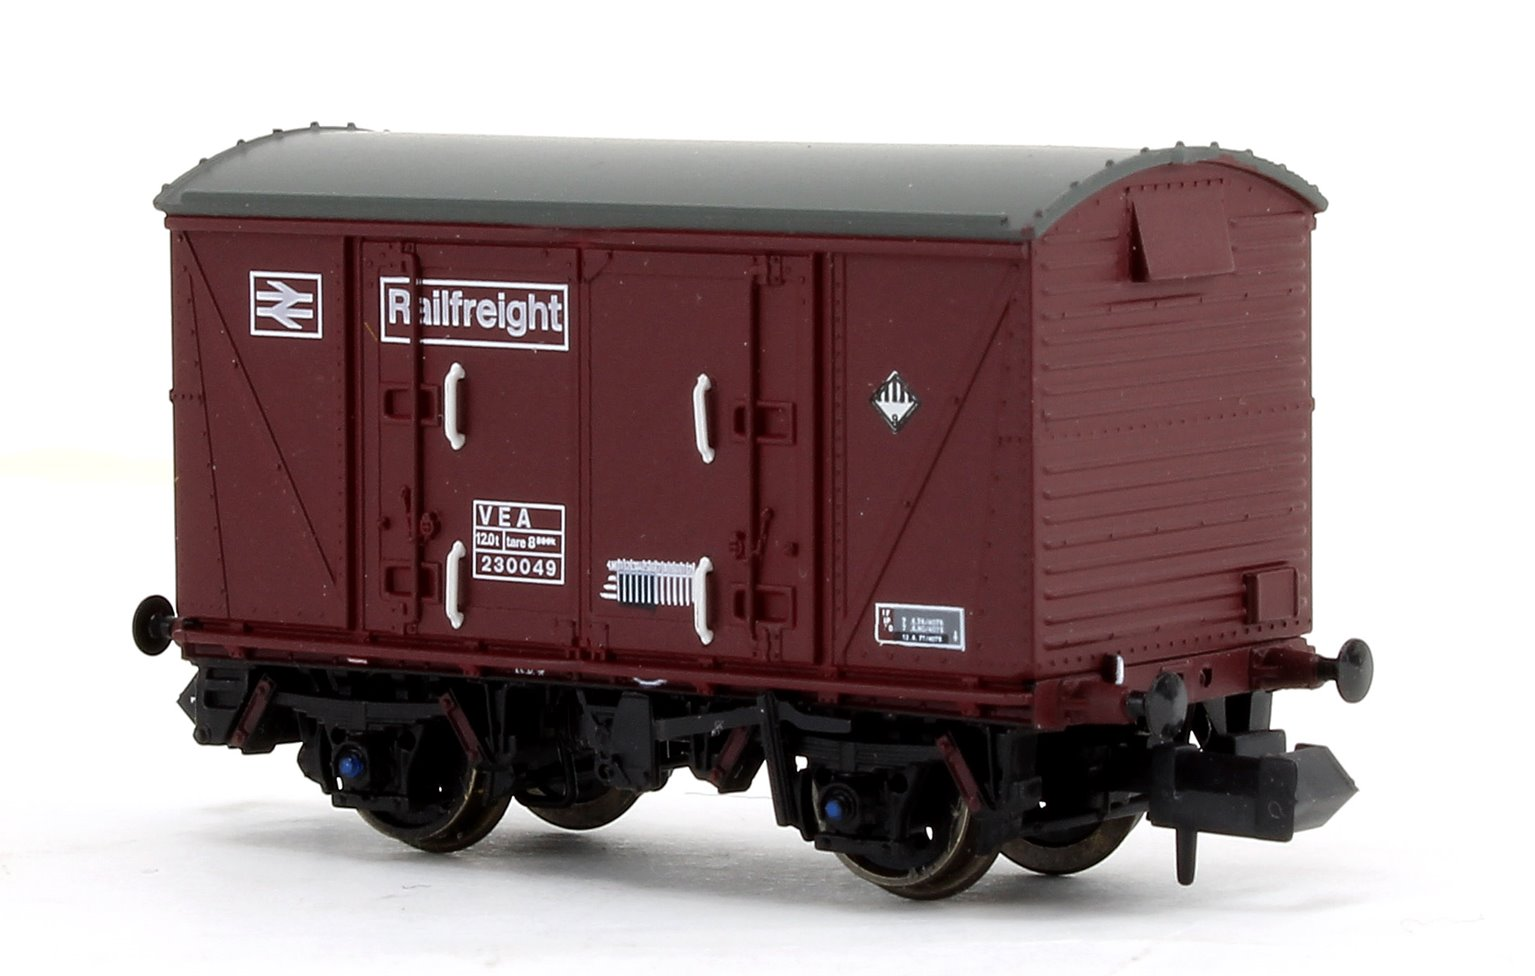 BR Maroon (Pristine) Railfreight VEA Munitions Van #230049